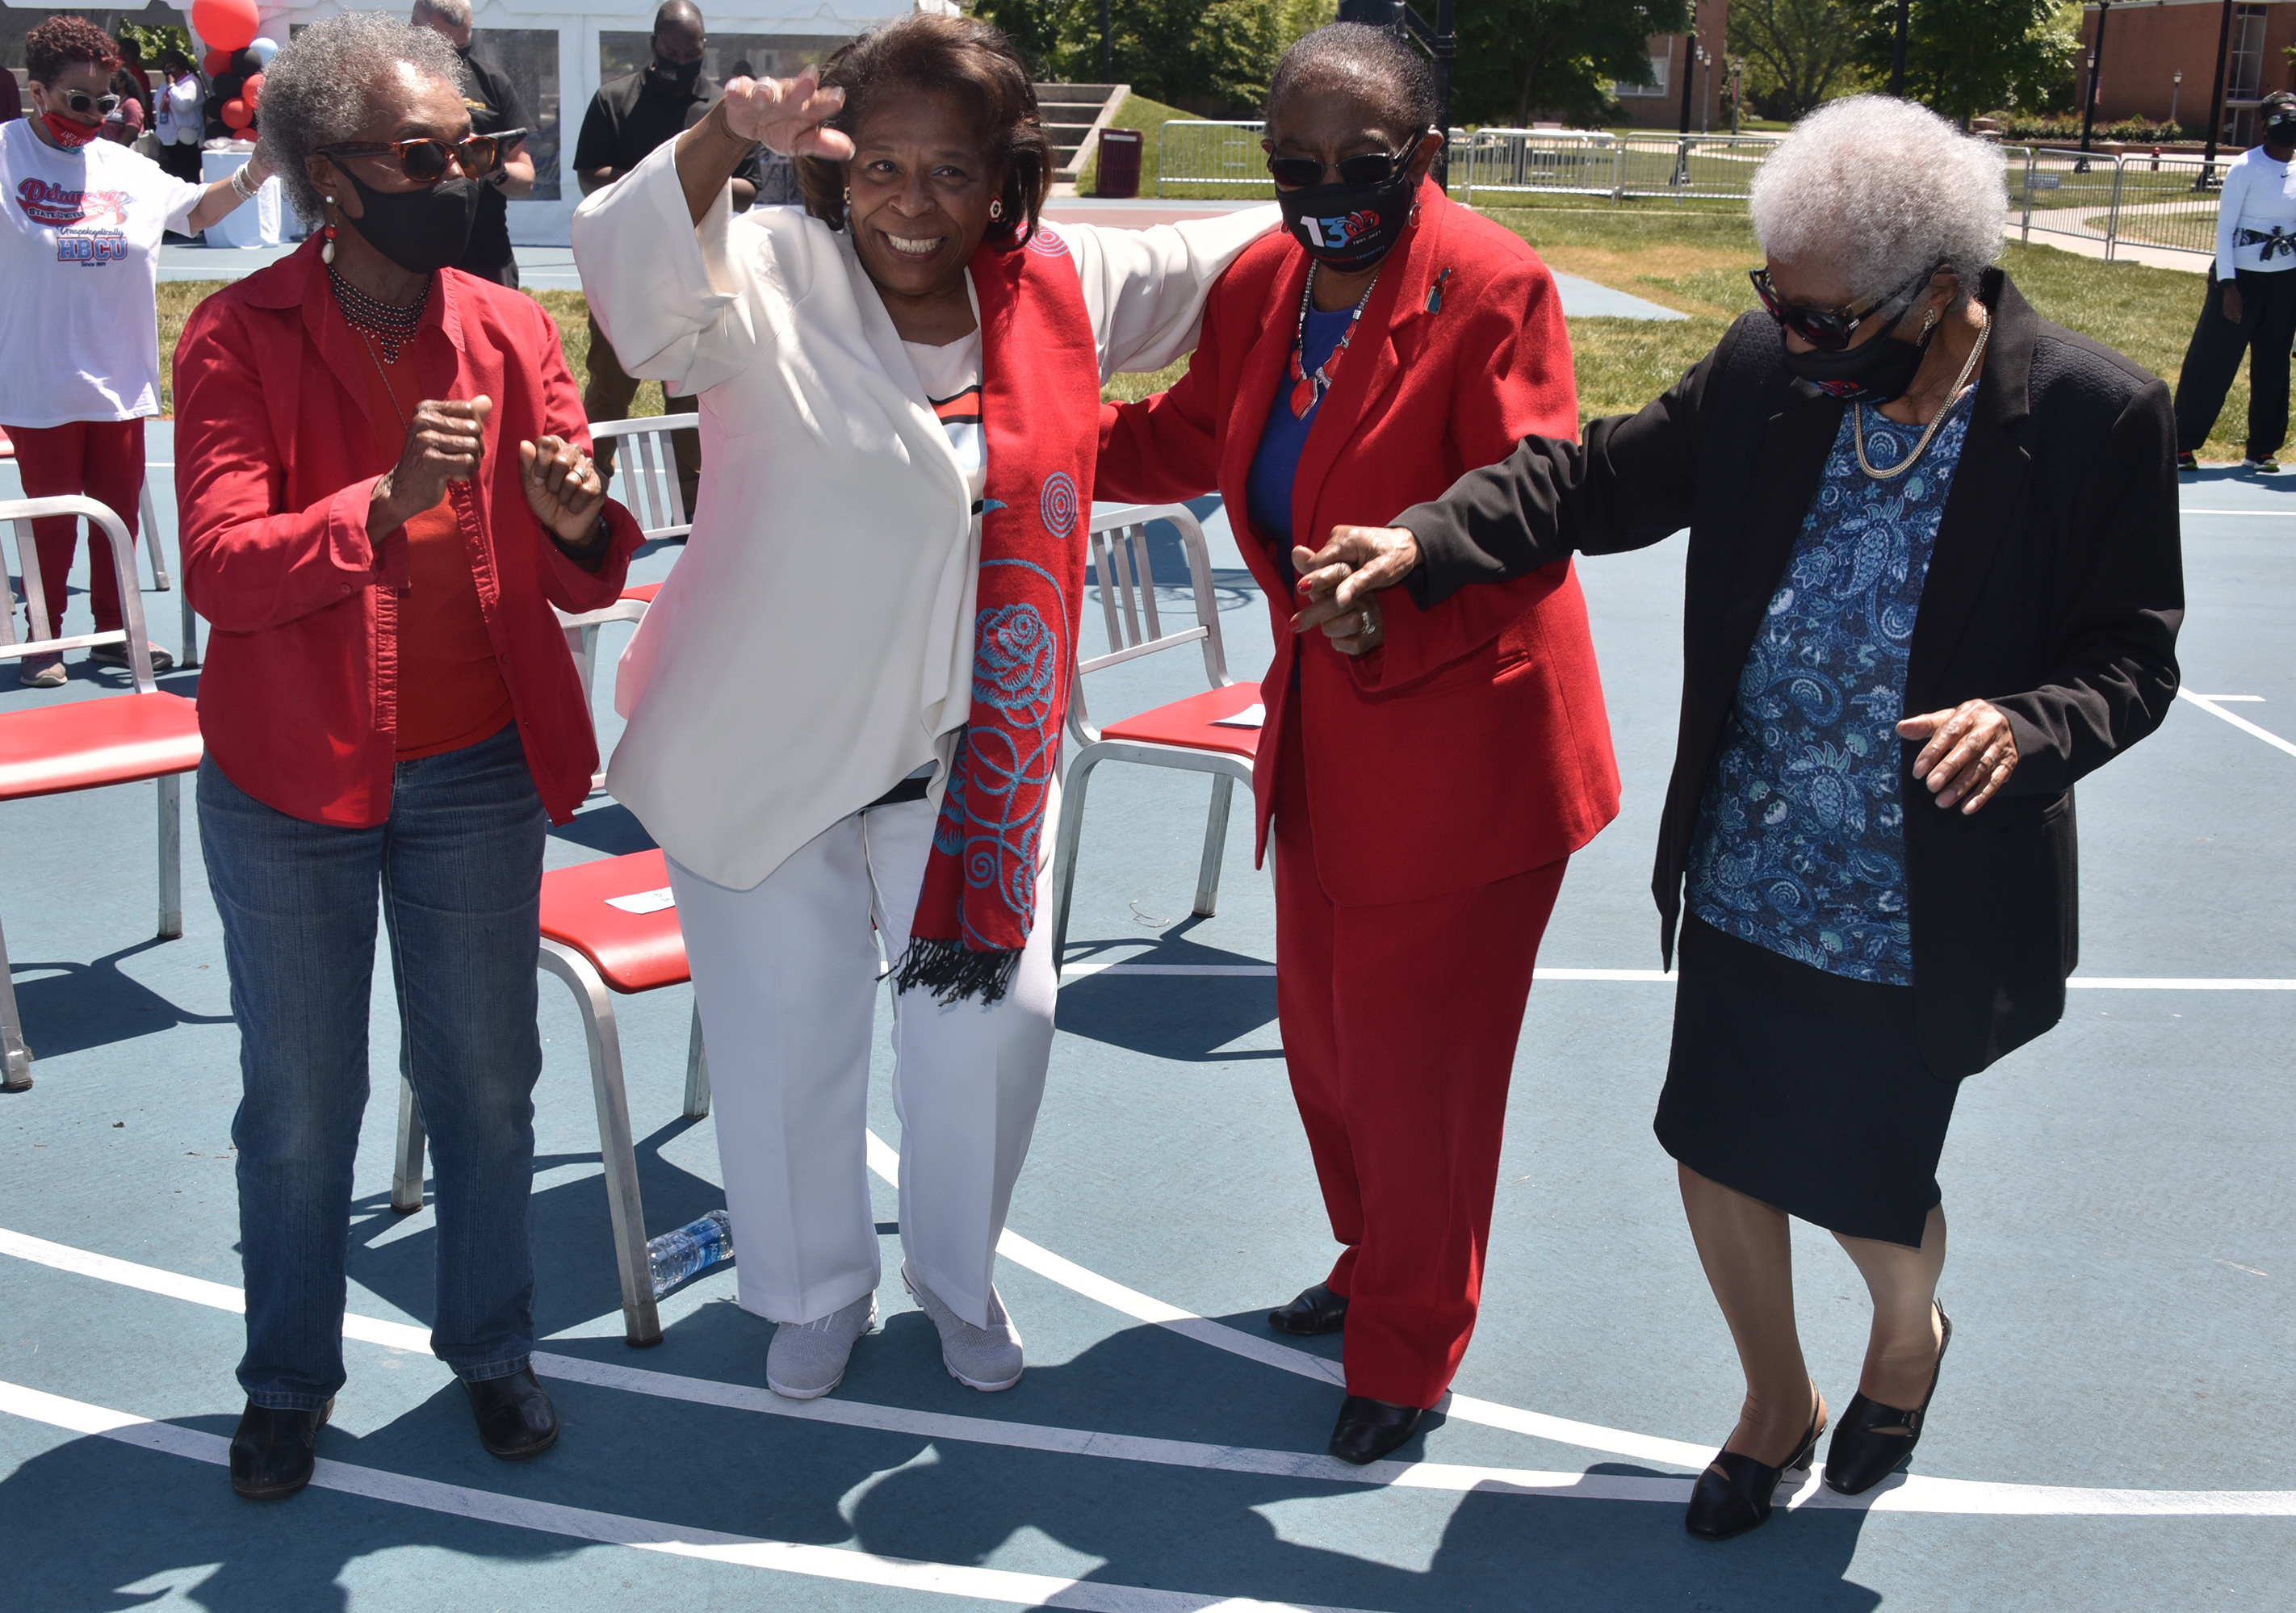 (L-r) Dolores Blakey, Dr. Wilma Mishoe, Dr. Reba Hollingsworth and Del State's oldest alum Susan Browne, 103, dance to the music